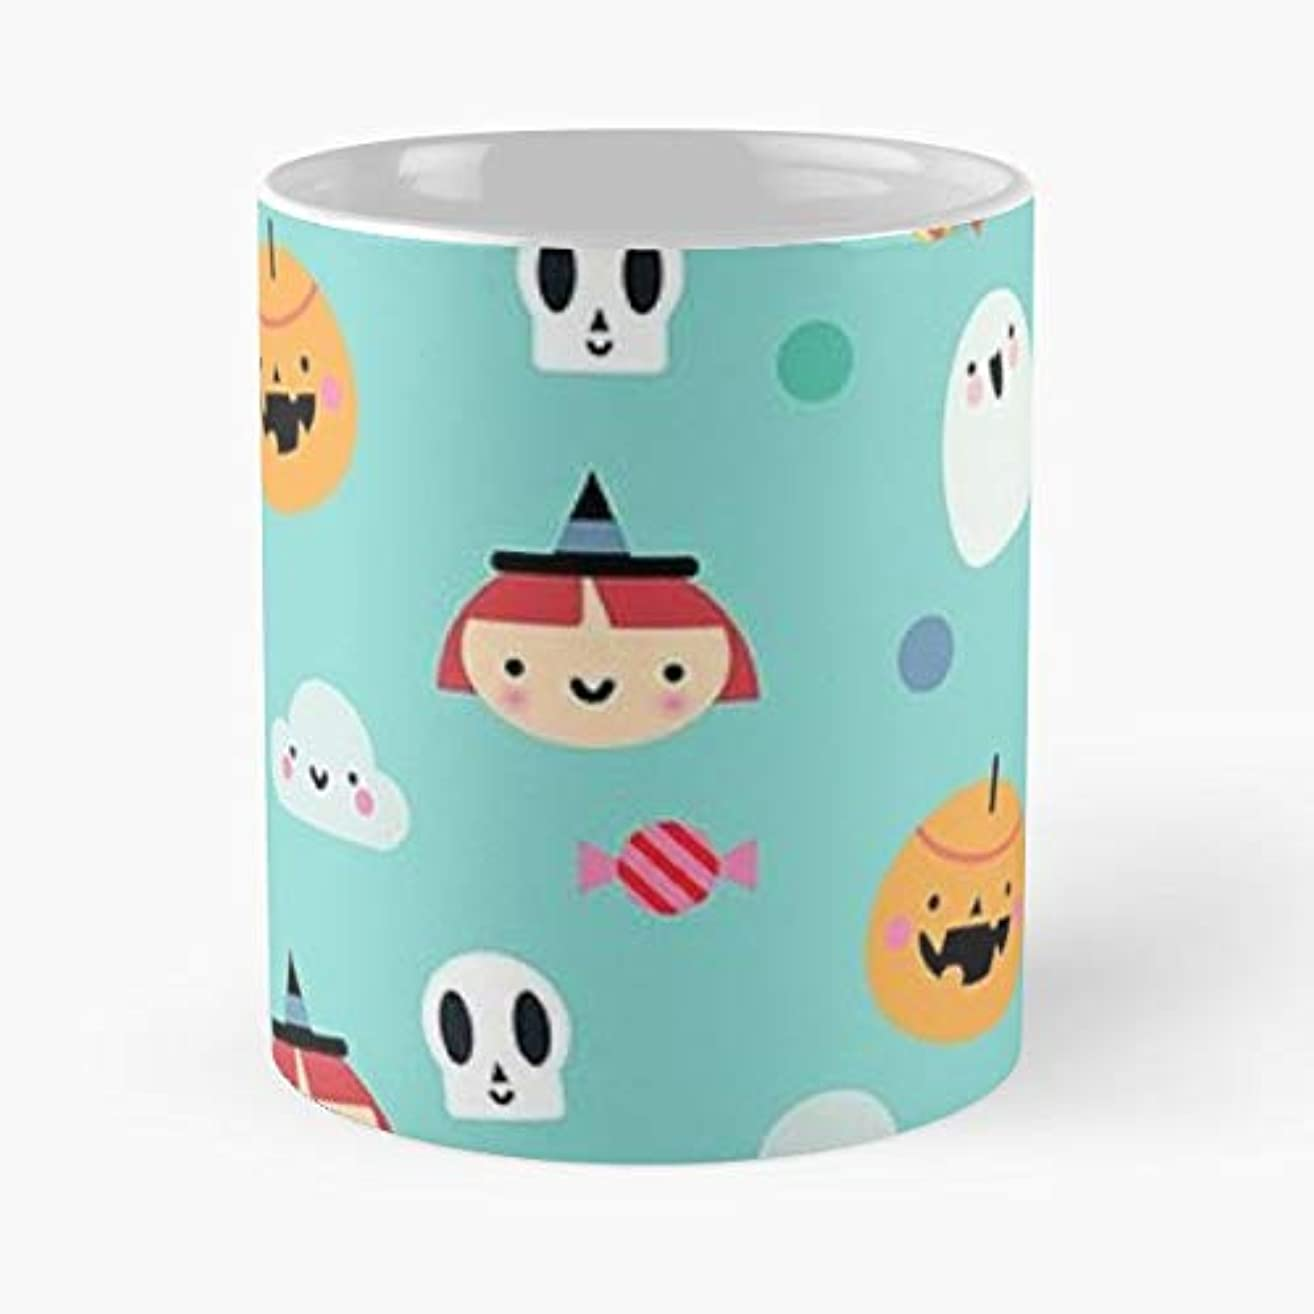 Ghosts Skulls Witches Spiders - 11 Oz Coffee Mugs Unique Ceramic Novelty Cup, The Best Gift For Halloween.